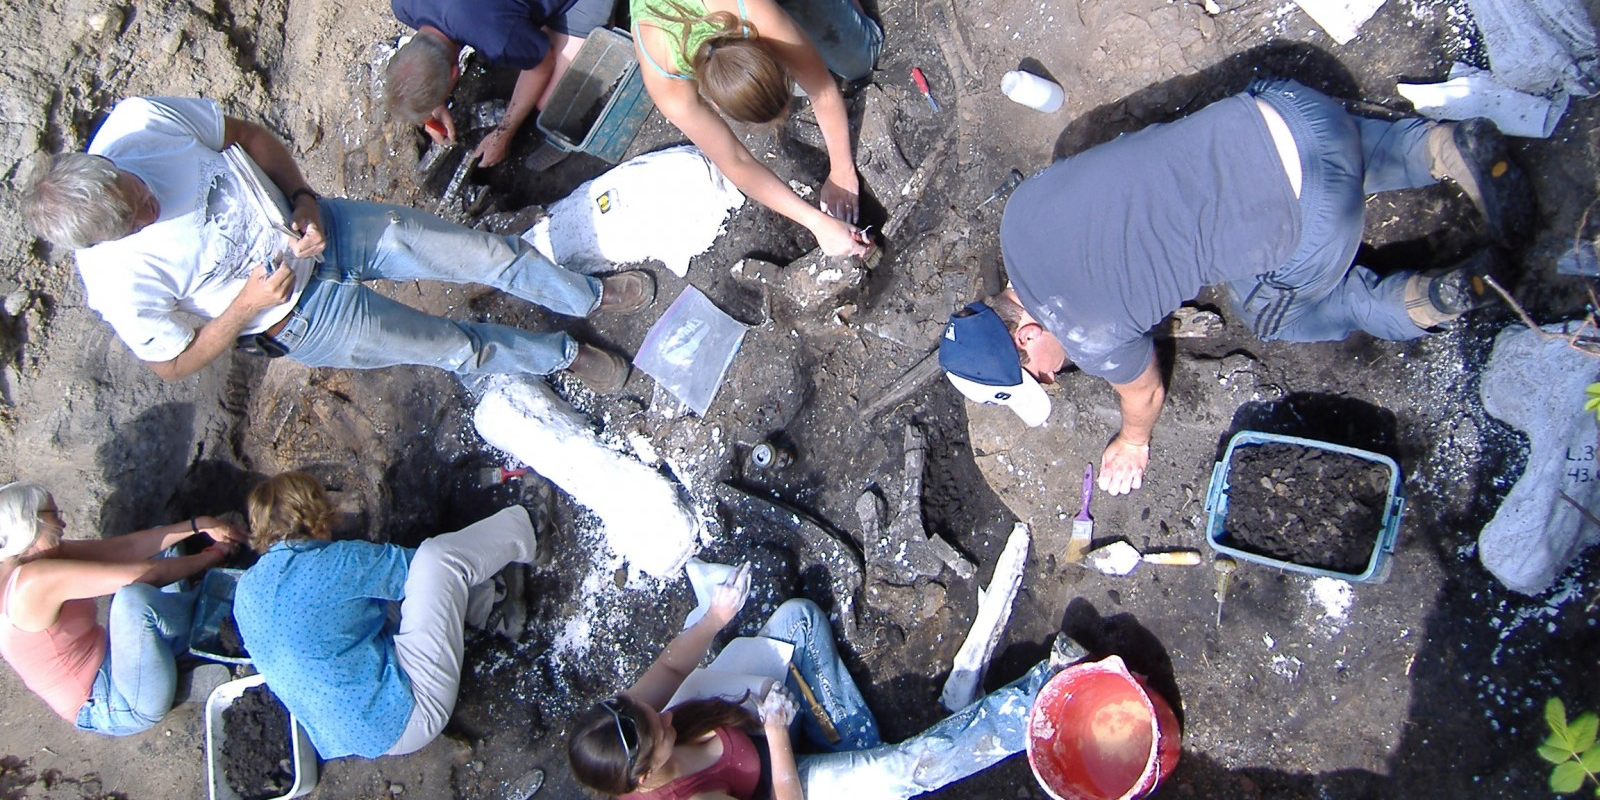 Phil Currie oversees the field school excavation at the Danek Bonebed in 2008. (Photo: Victoria Arbour)